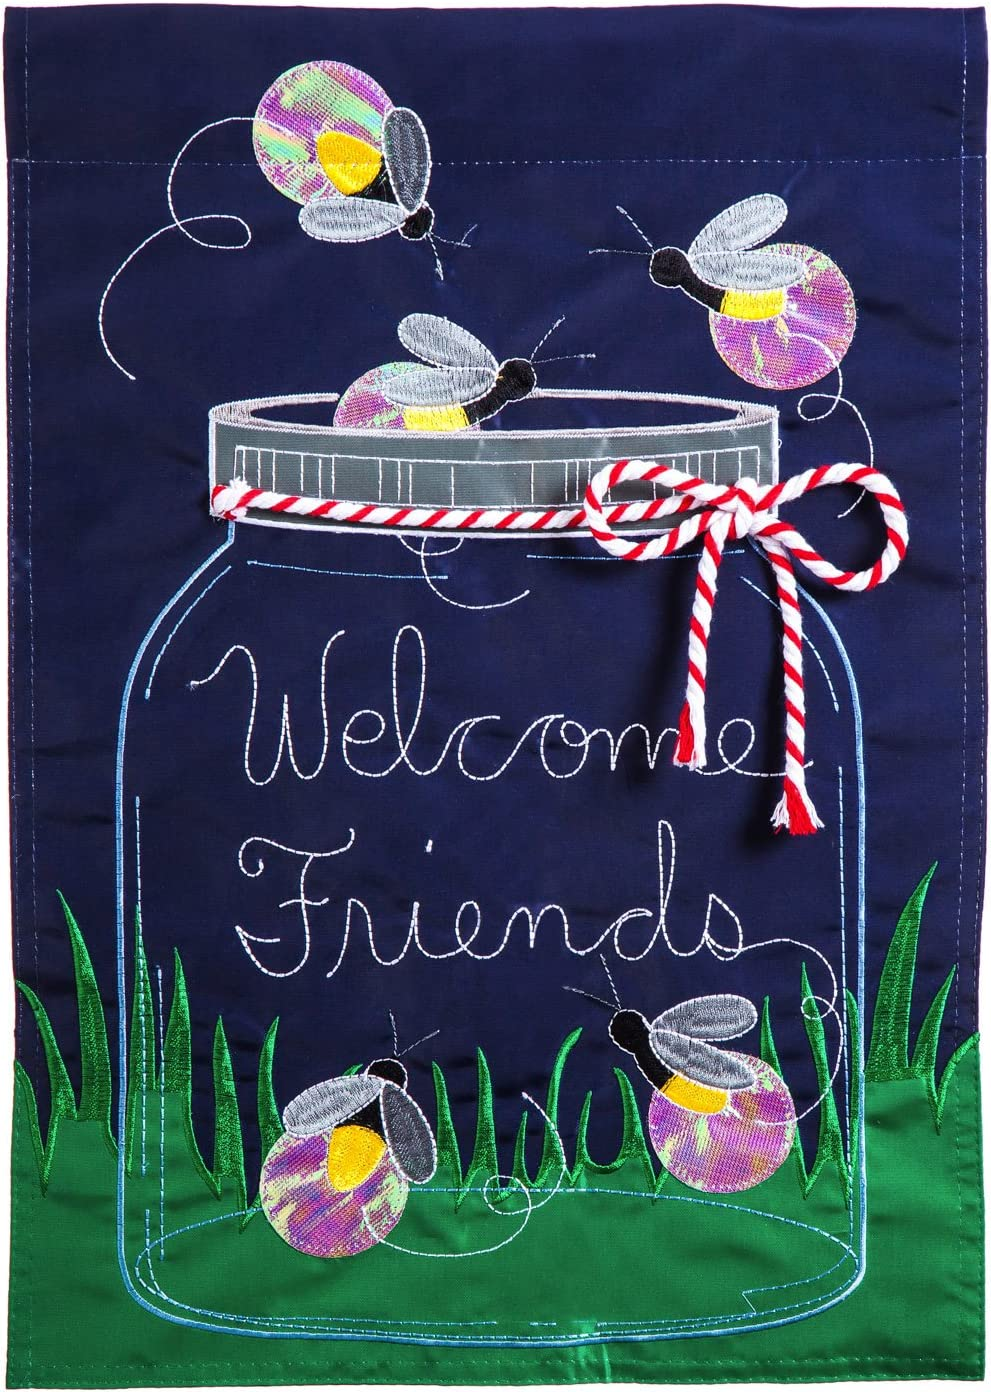 Evergreen Firefly Welcome Applique Garden Flag, 12.5 x 18 inches